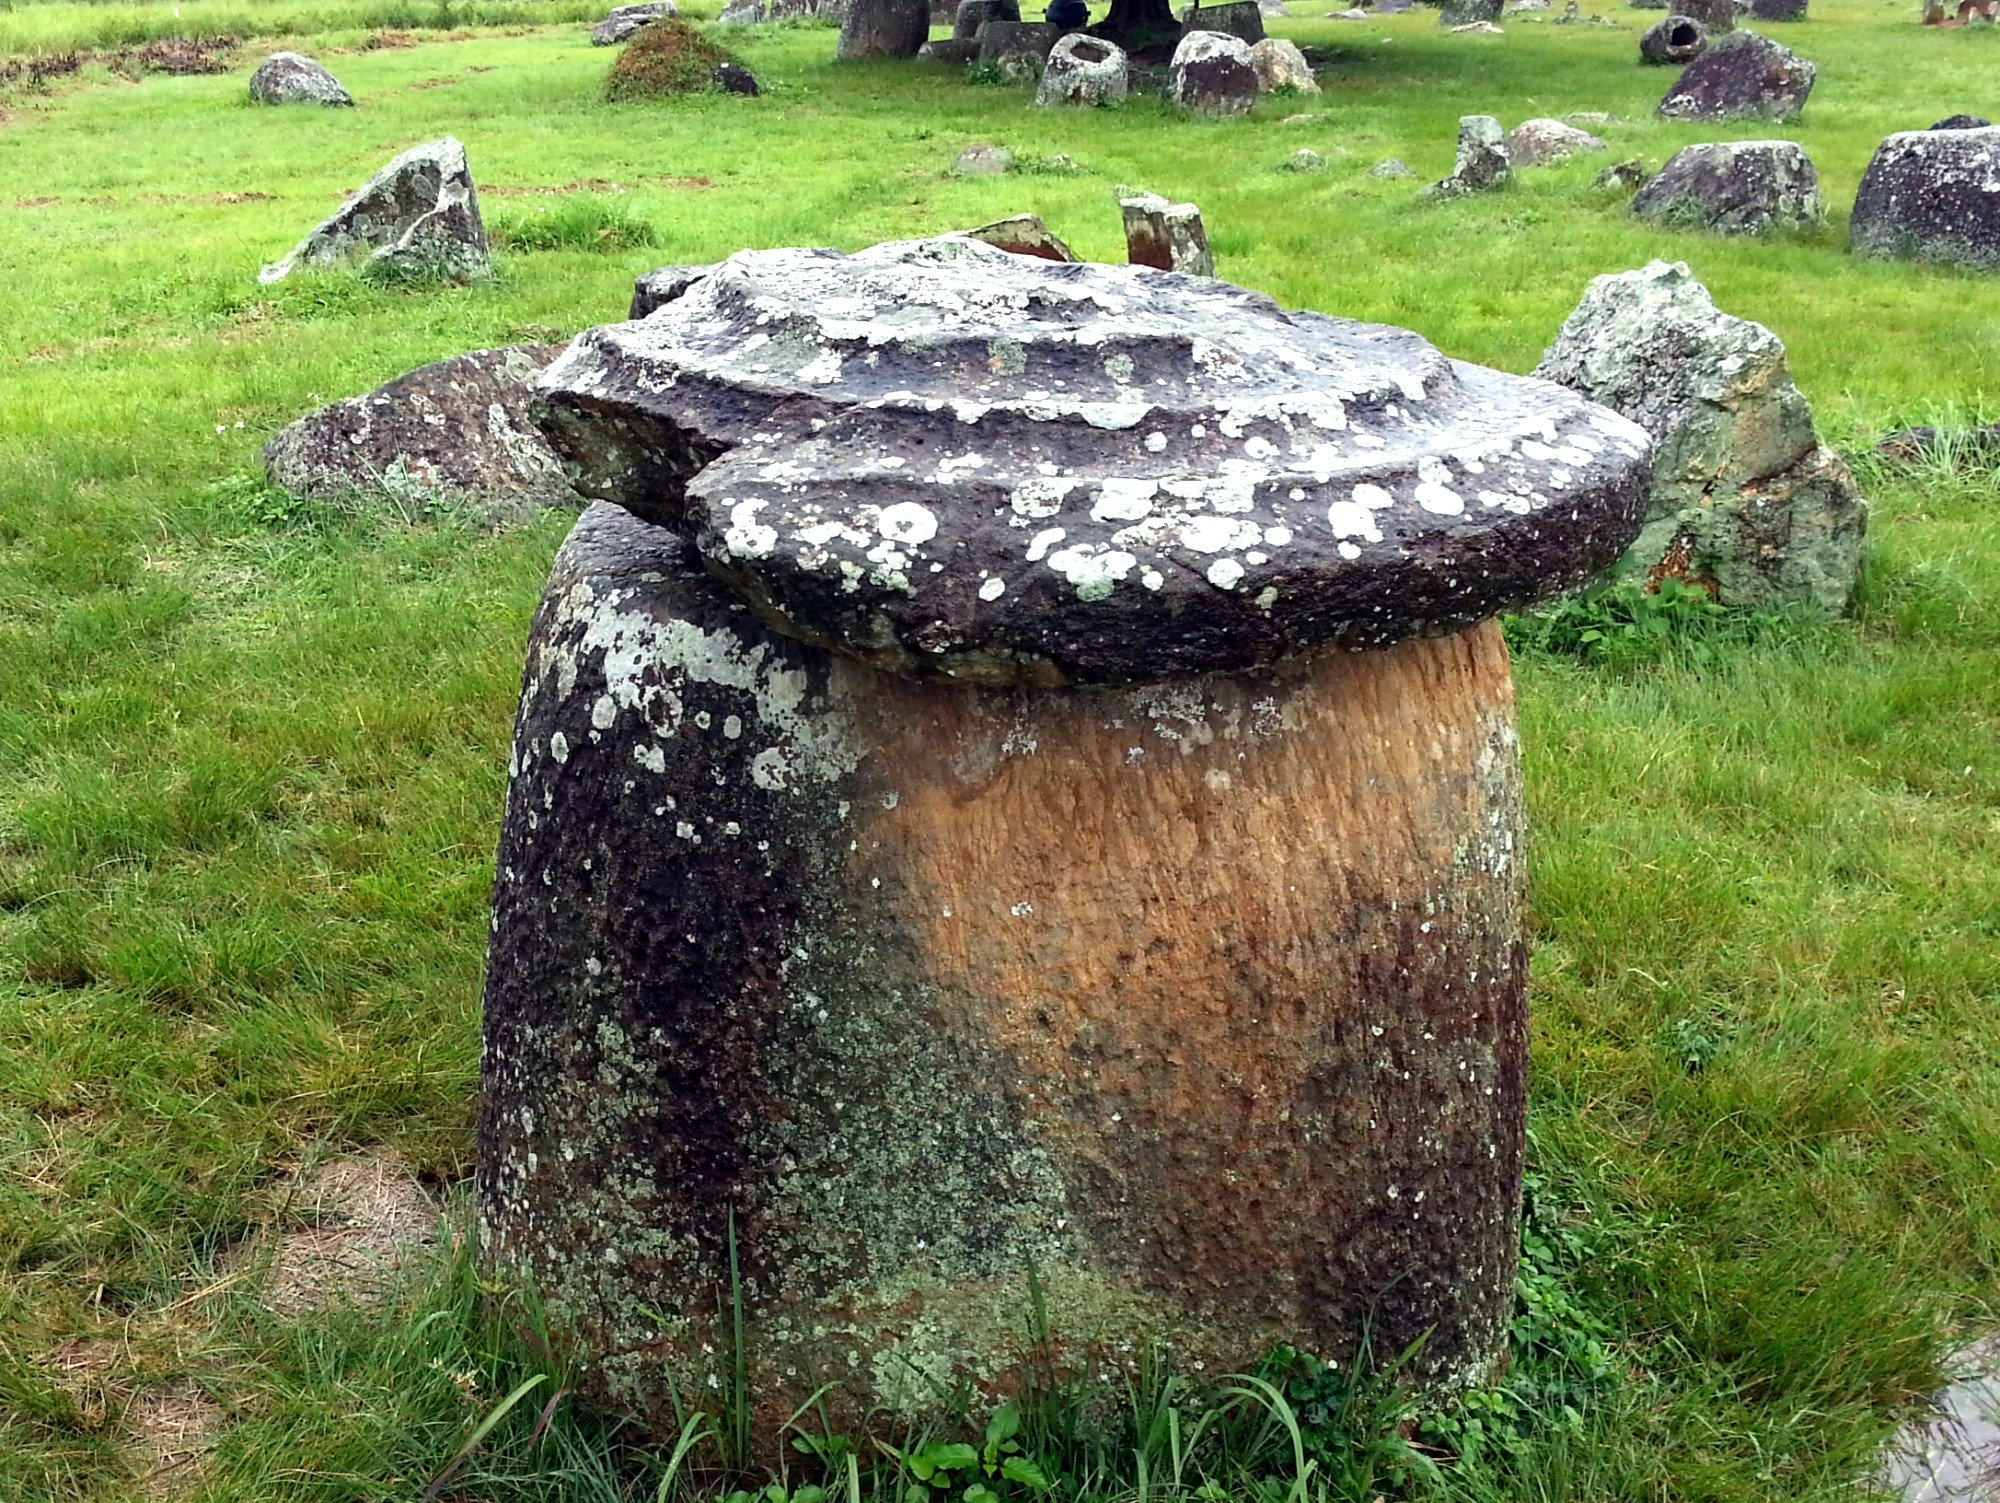 Jar with lid at Jar Site 1